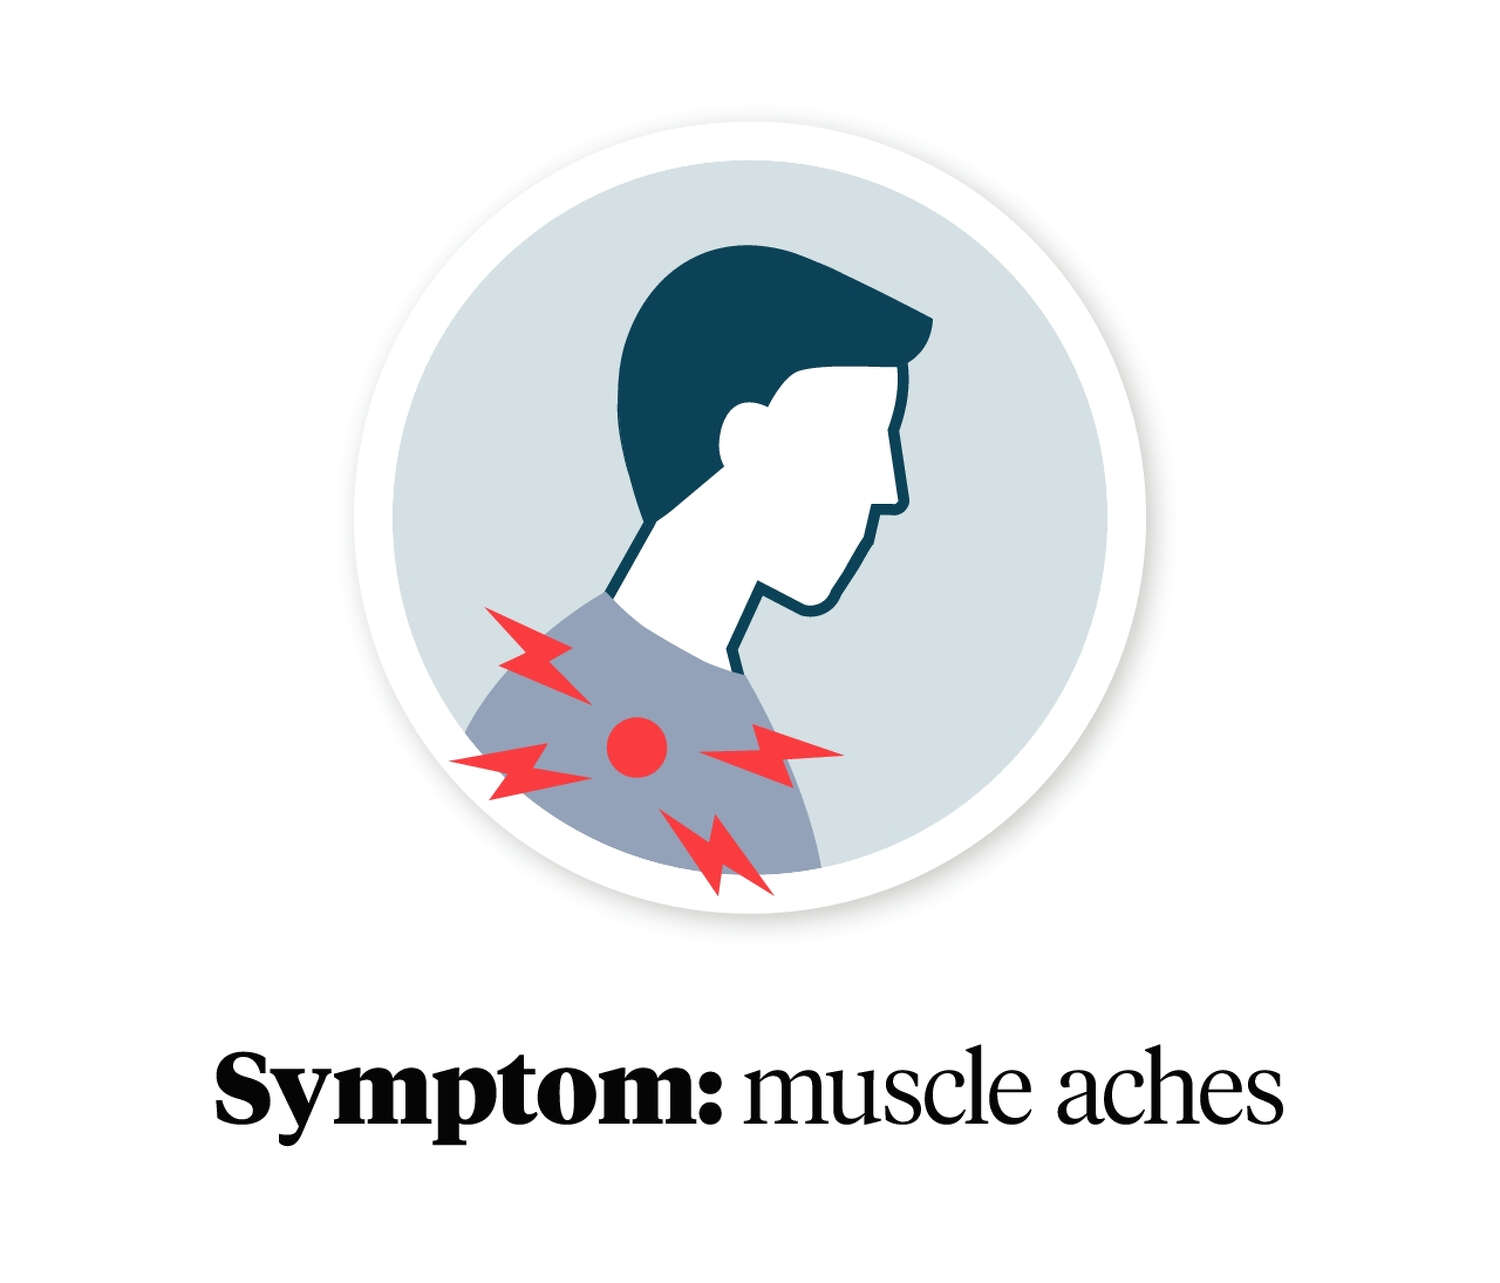 Graphic showing a person with muscle aches